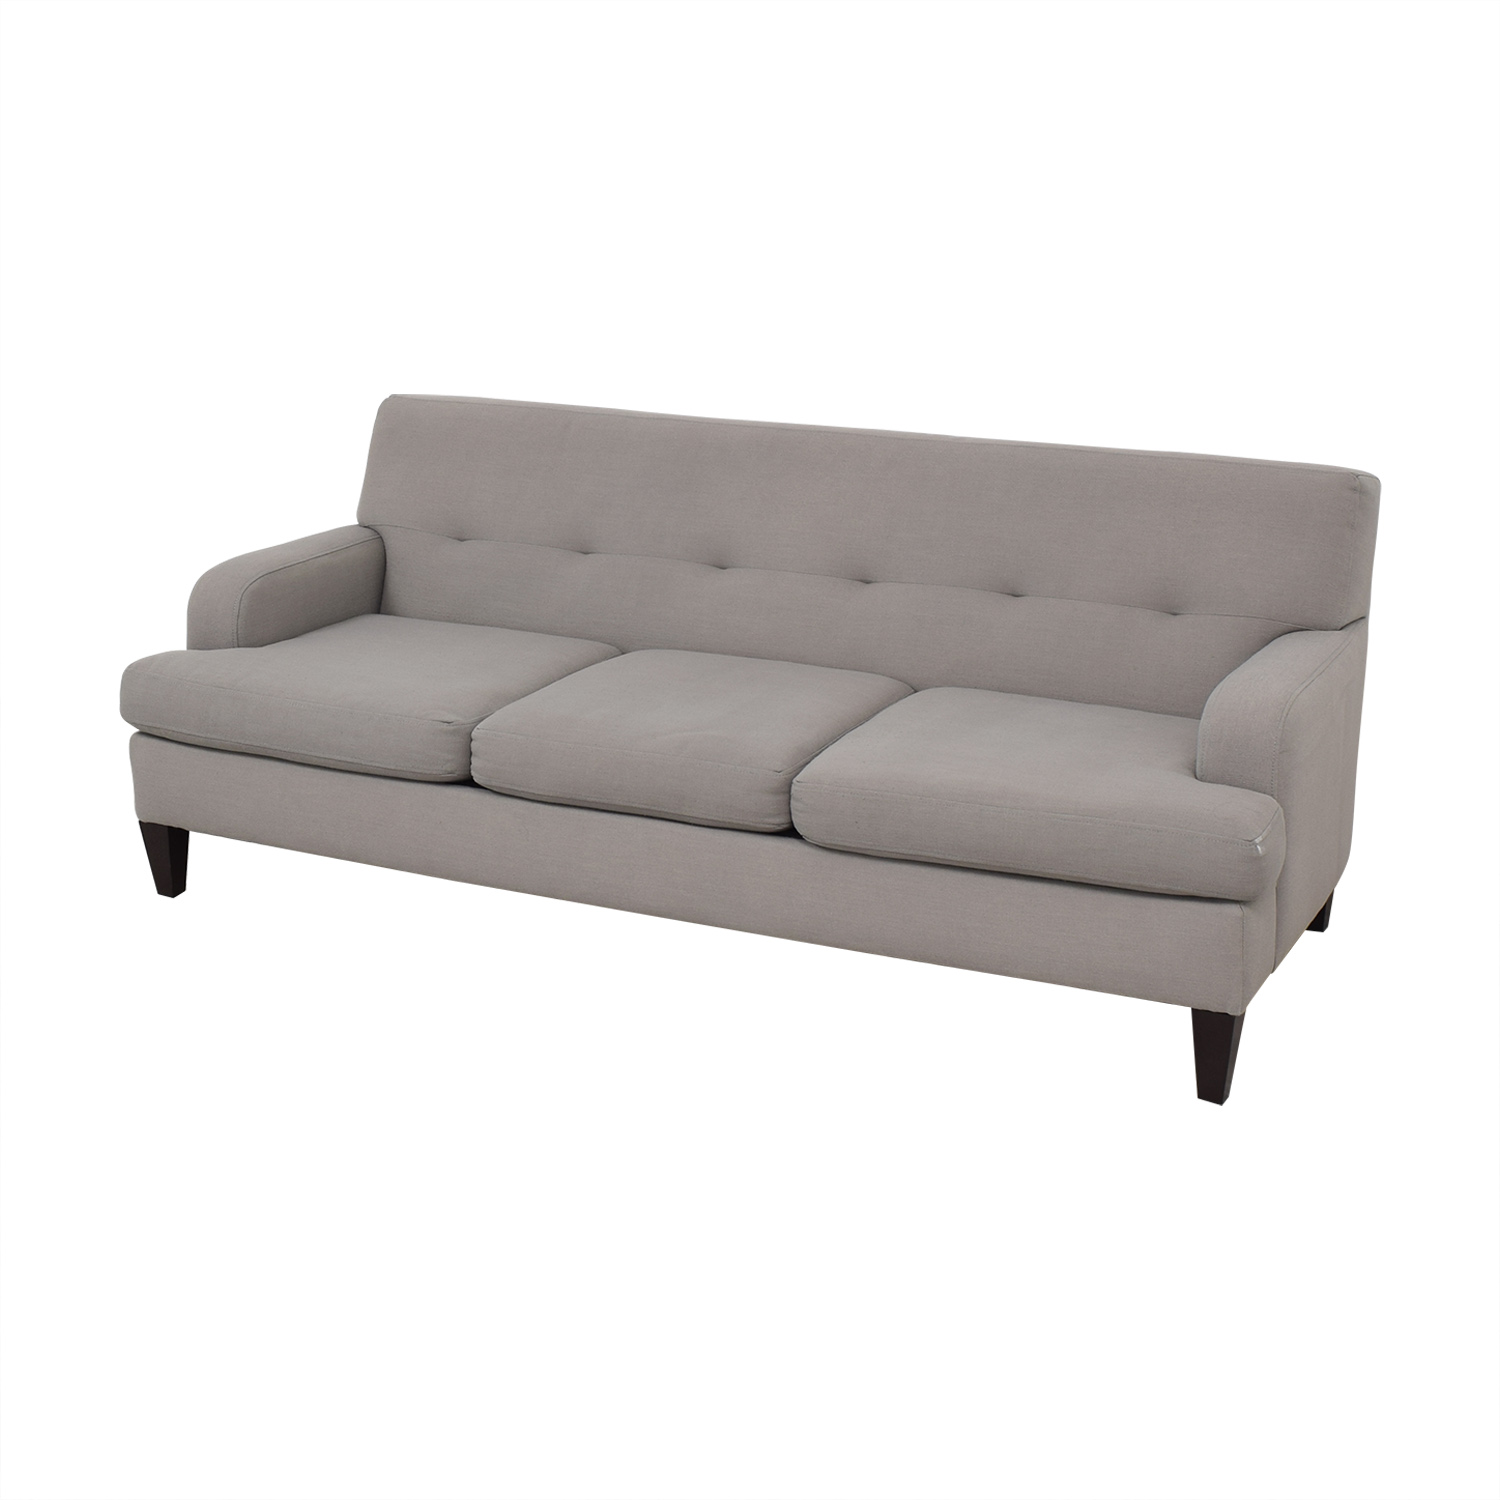 Macy's Macy's Jillian Sofa grey